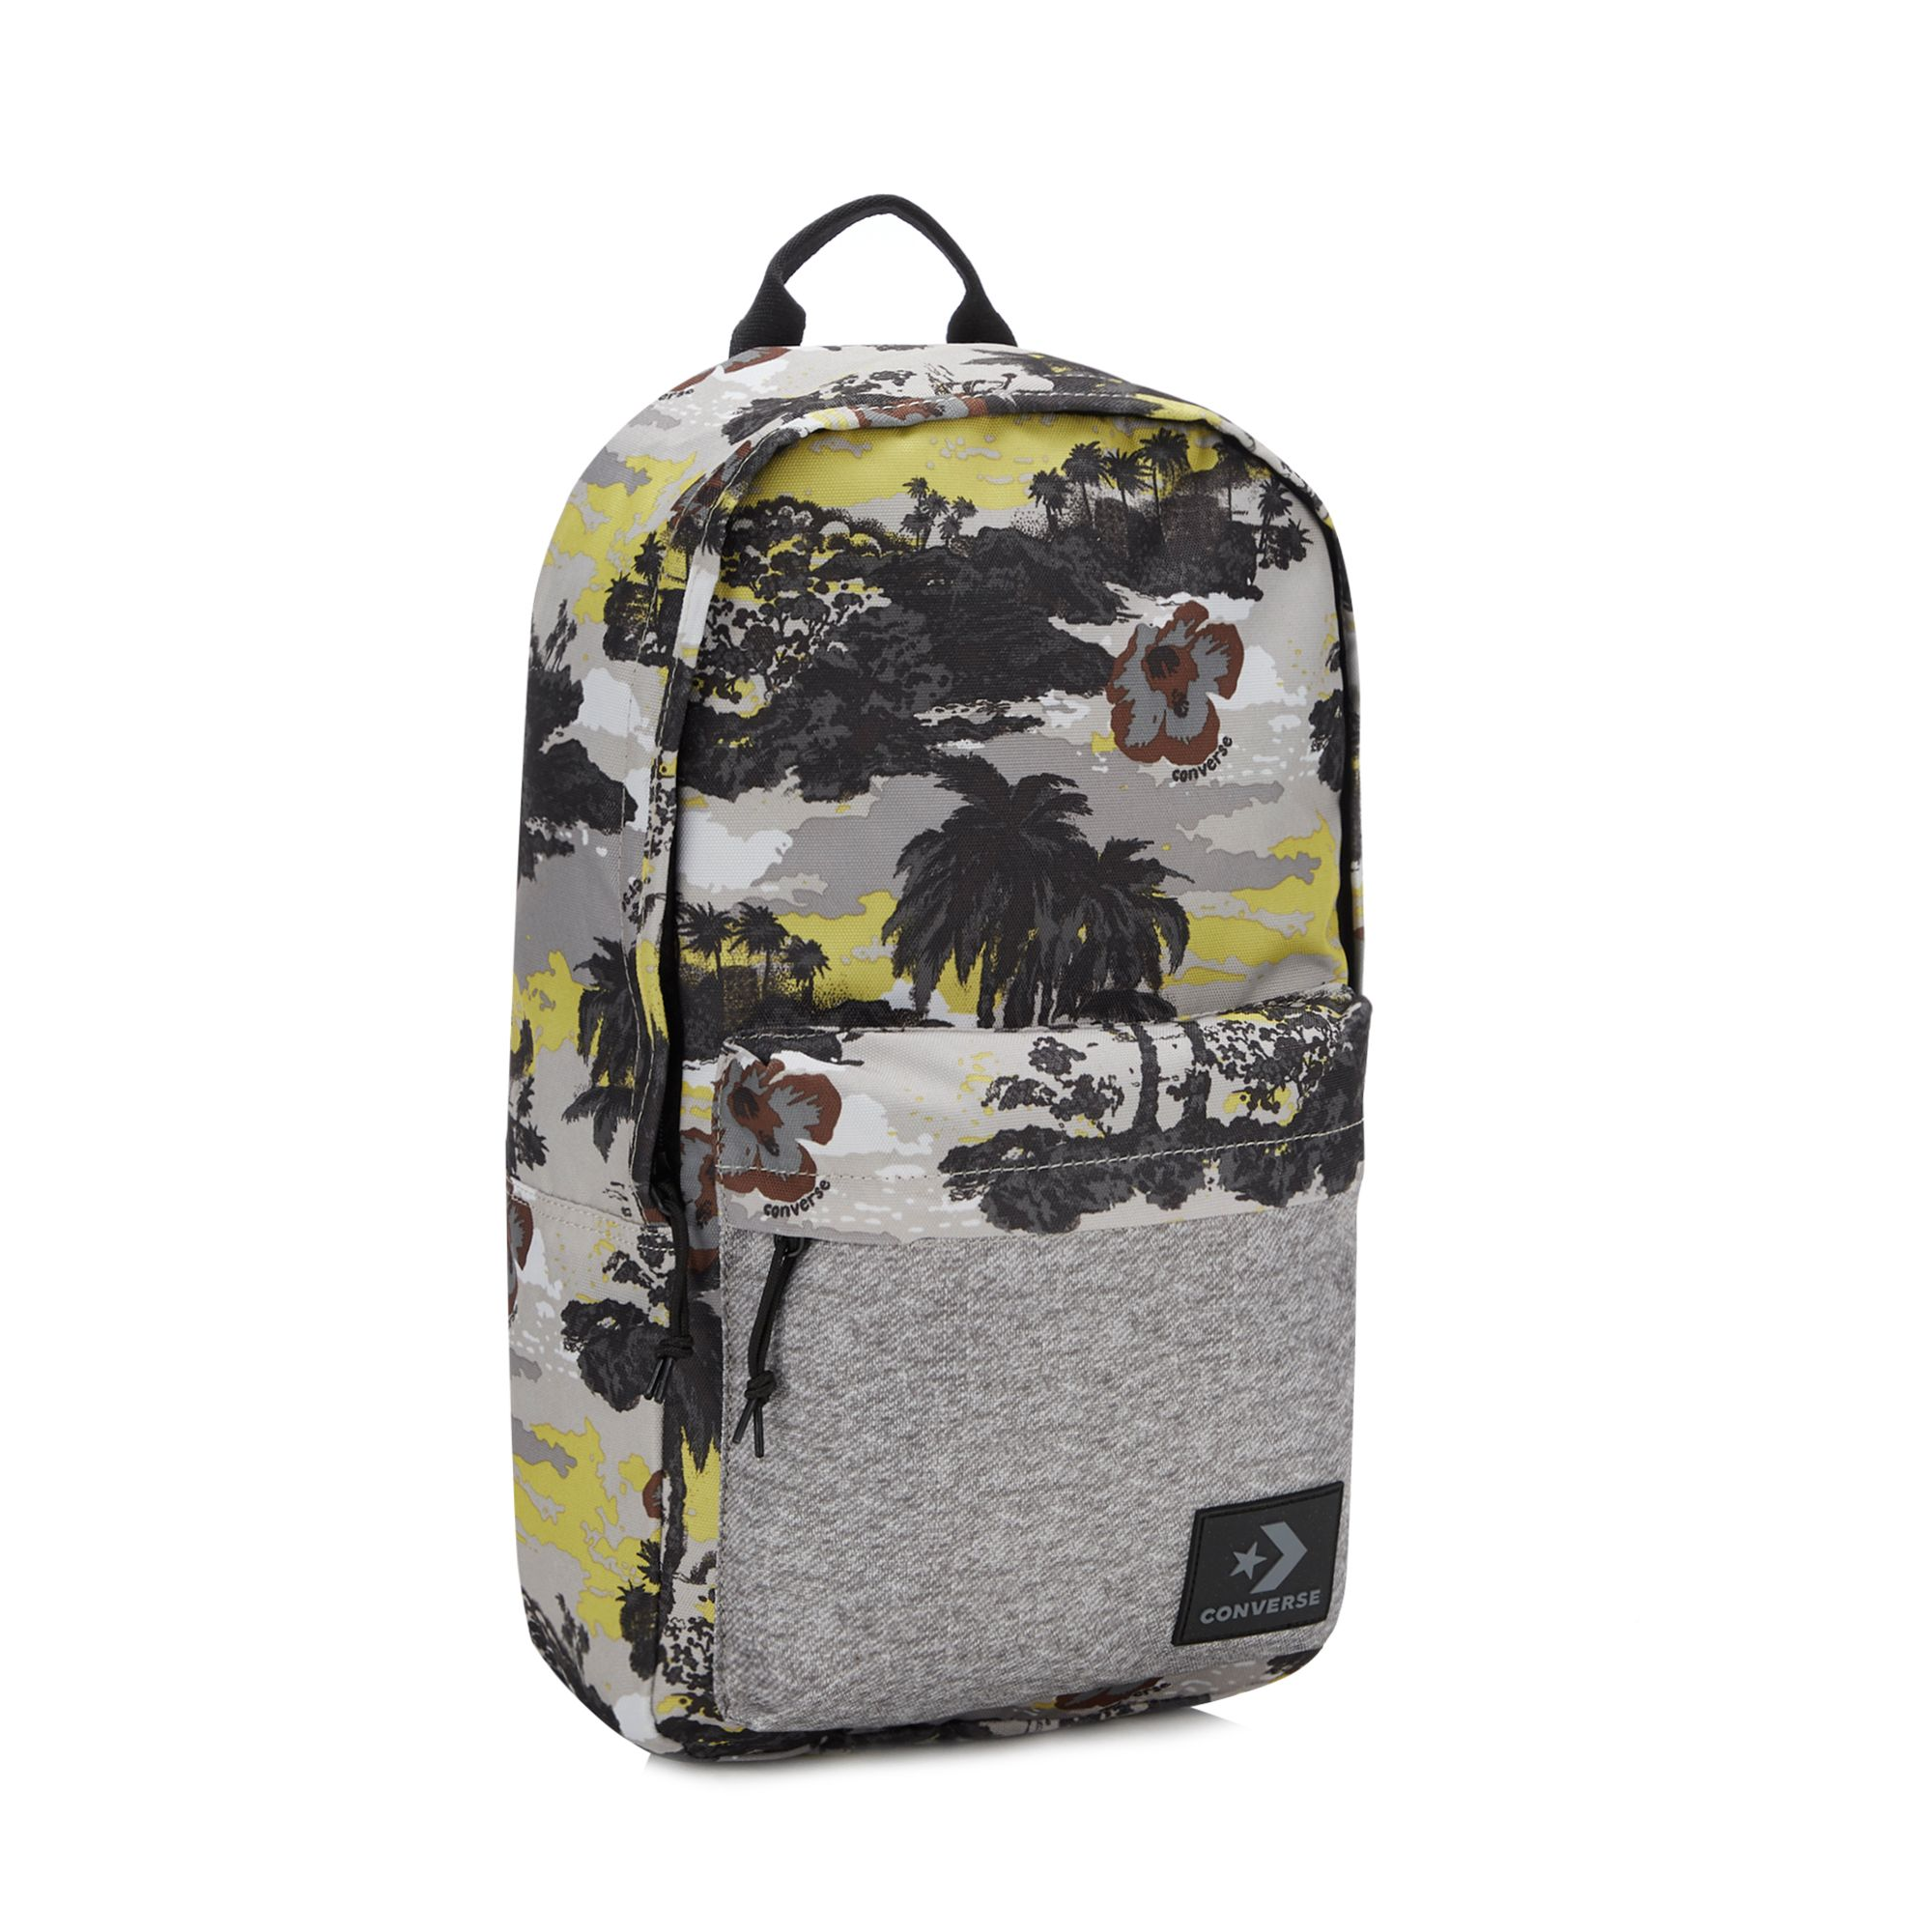 ec2a9effa0c9 Details about Converse Men Dark Grey Tropical Backpack One Size